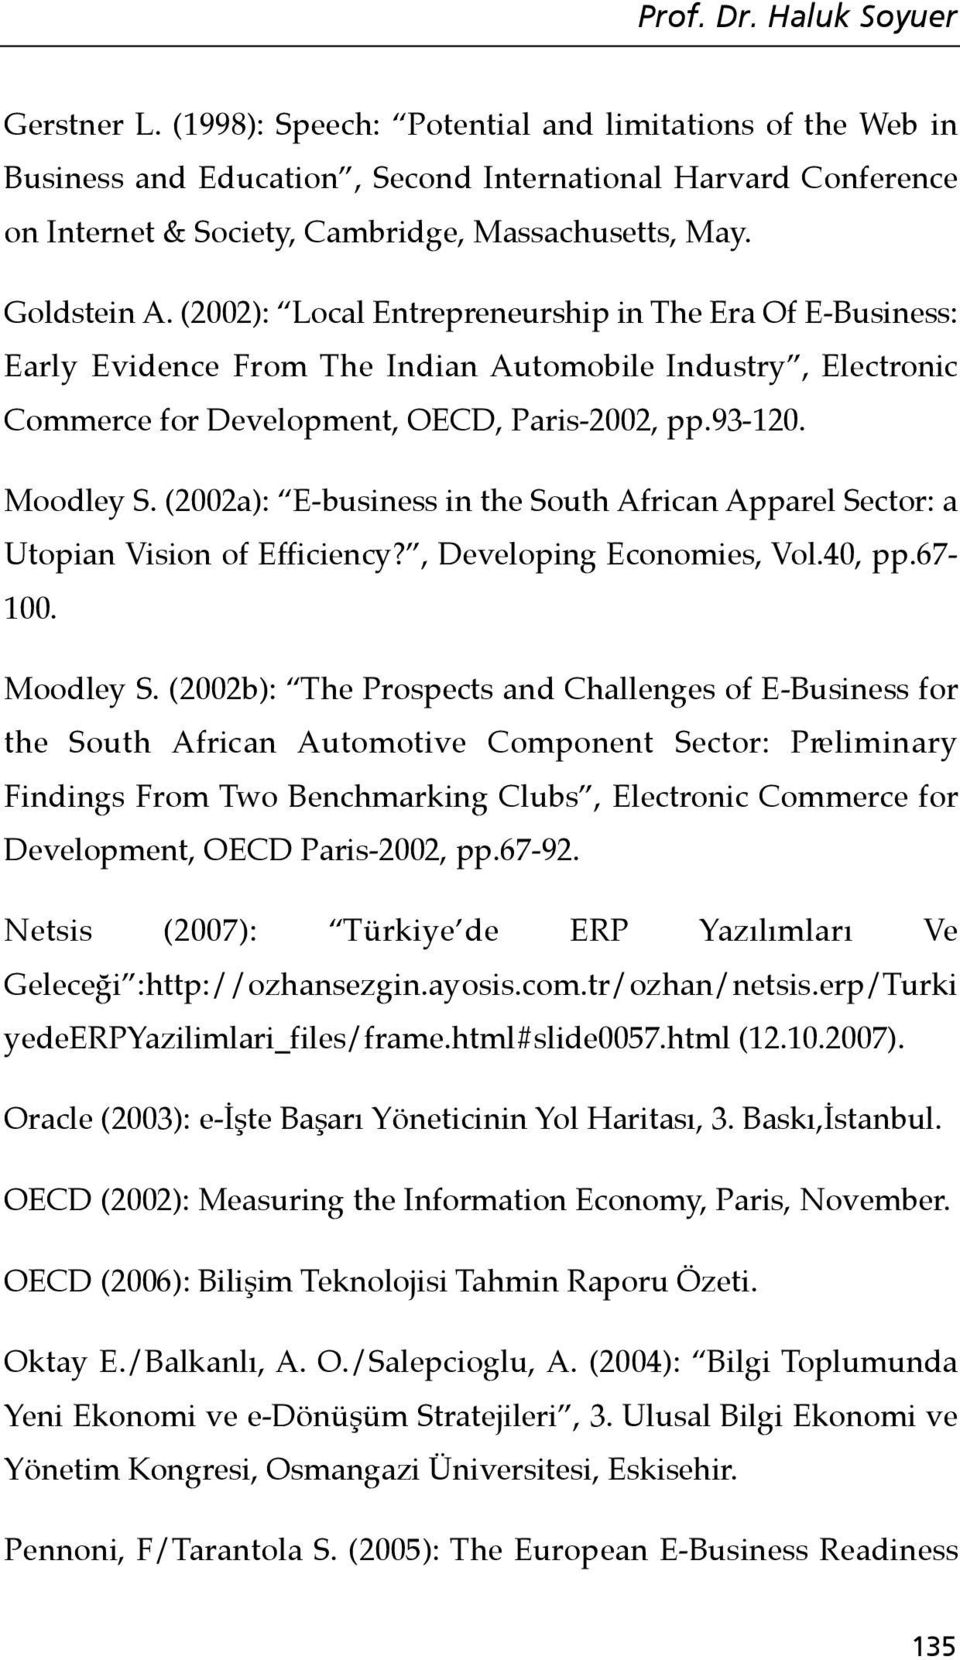 (2002): Local Entrepreneurship in The Era Of E-Business: Early Evidence From The Indian Automobile Industry, Electronic Commerce for Development, OECD, Paris-2002, pp.93-120. Moodley S.